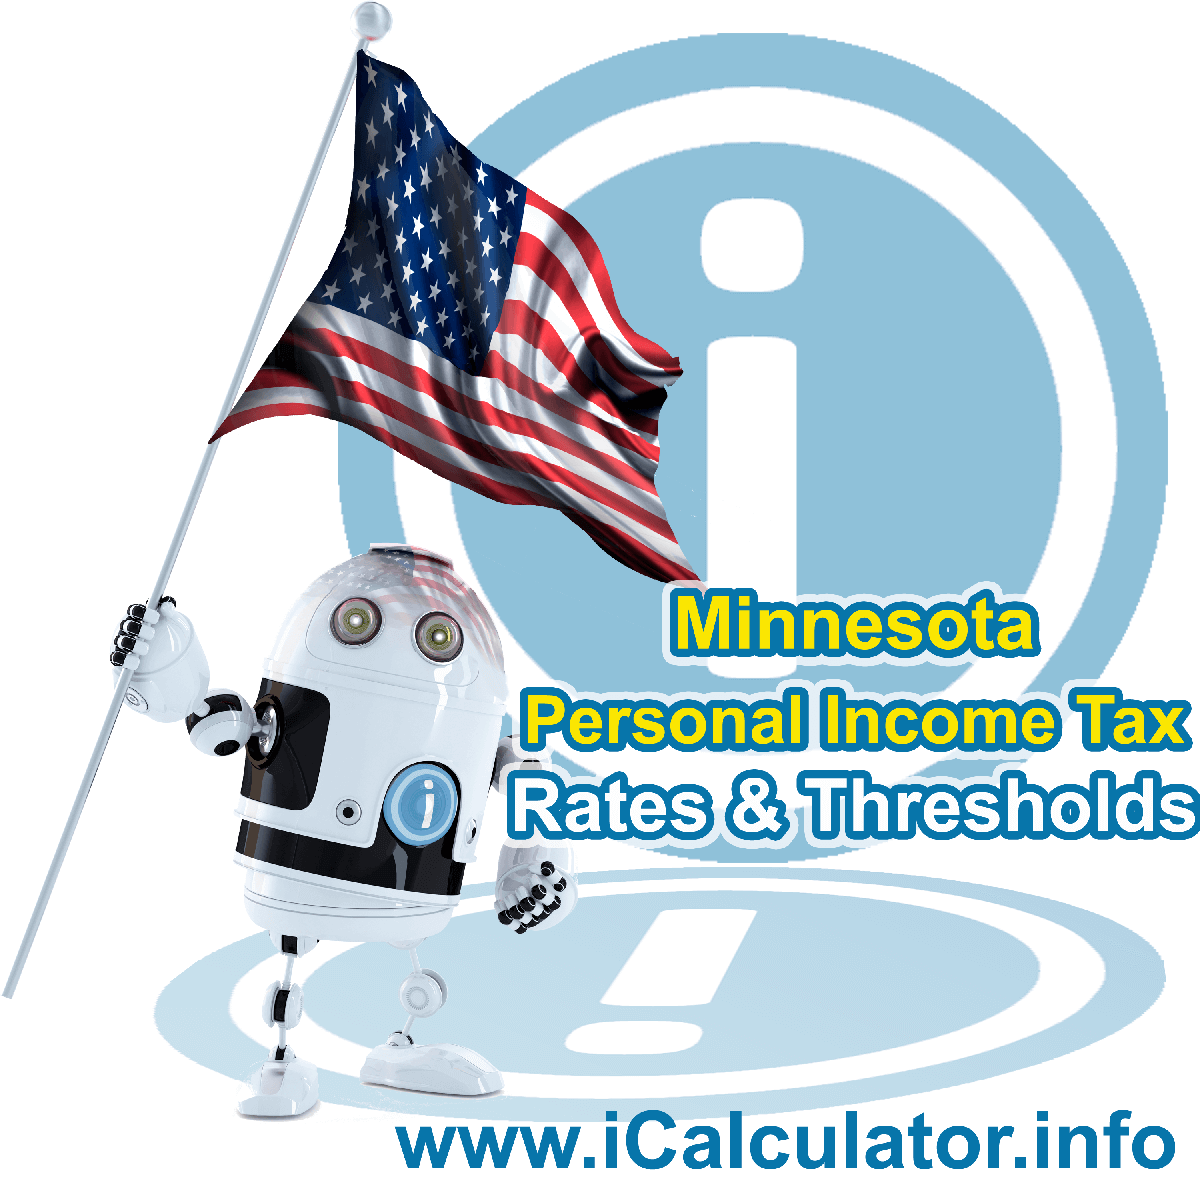 Minnesota State Tax Tables 2014. This image displays details of the Minnesota State Tax Tables for the 2014 tax return year which is provided in support of the 2014 US Tax Calculator